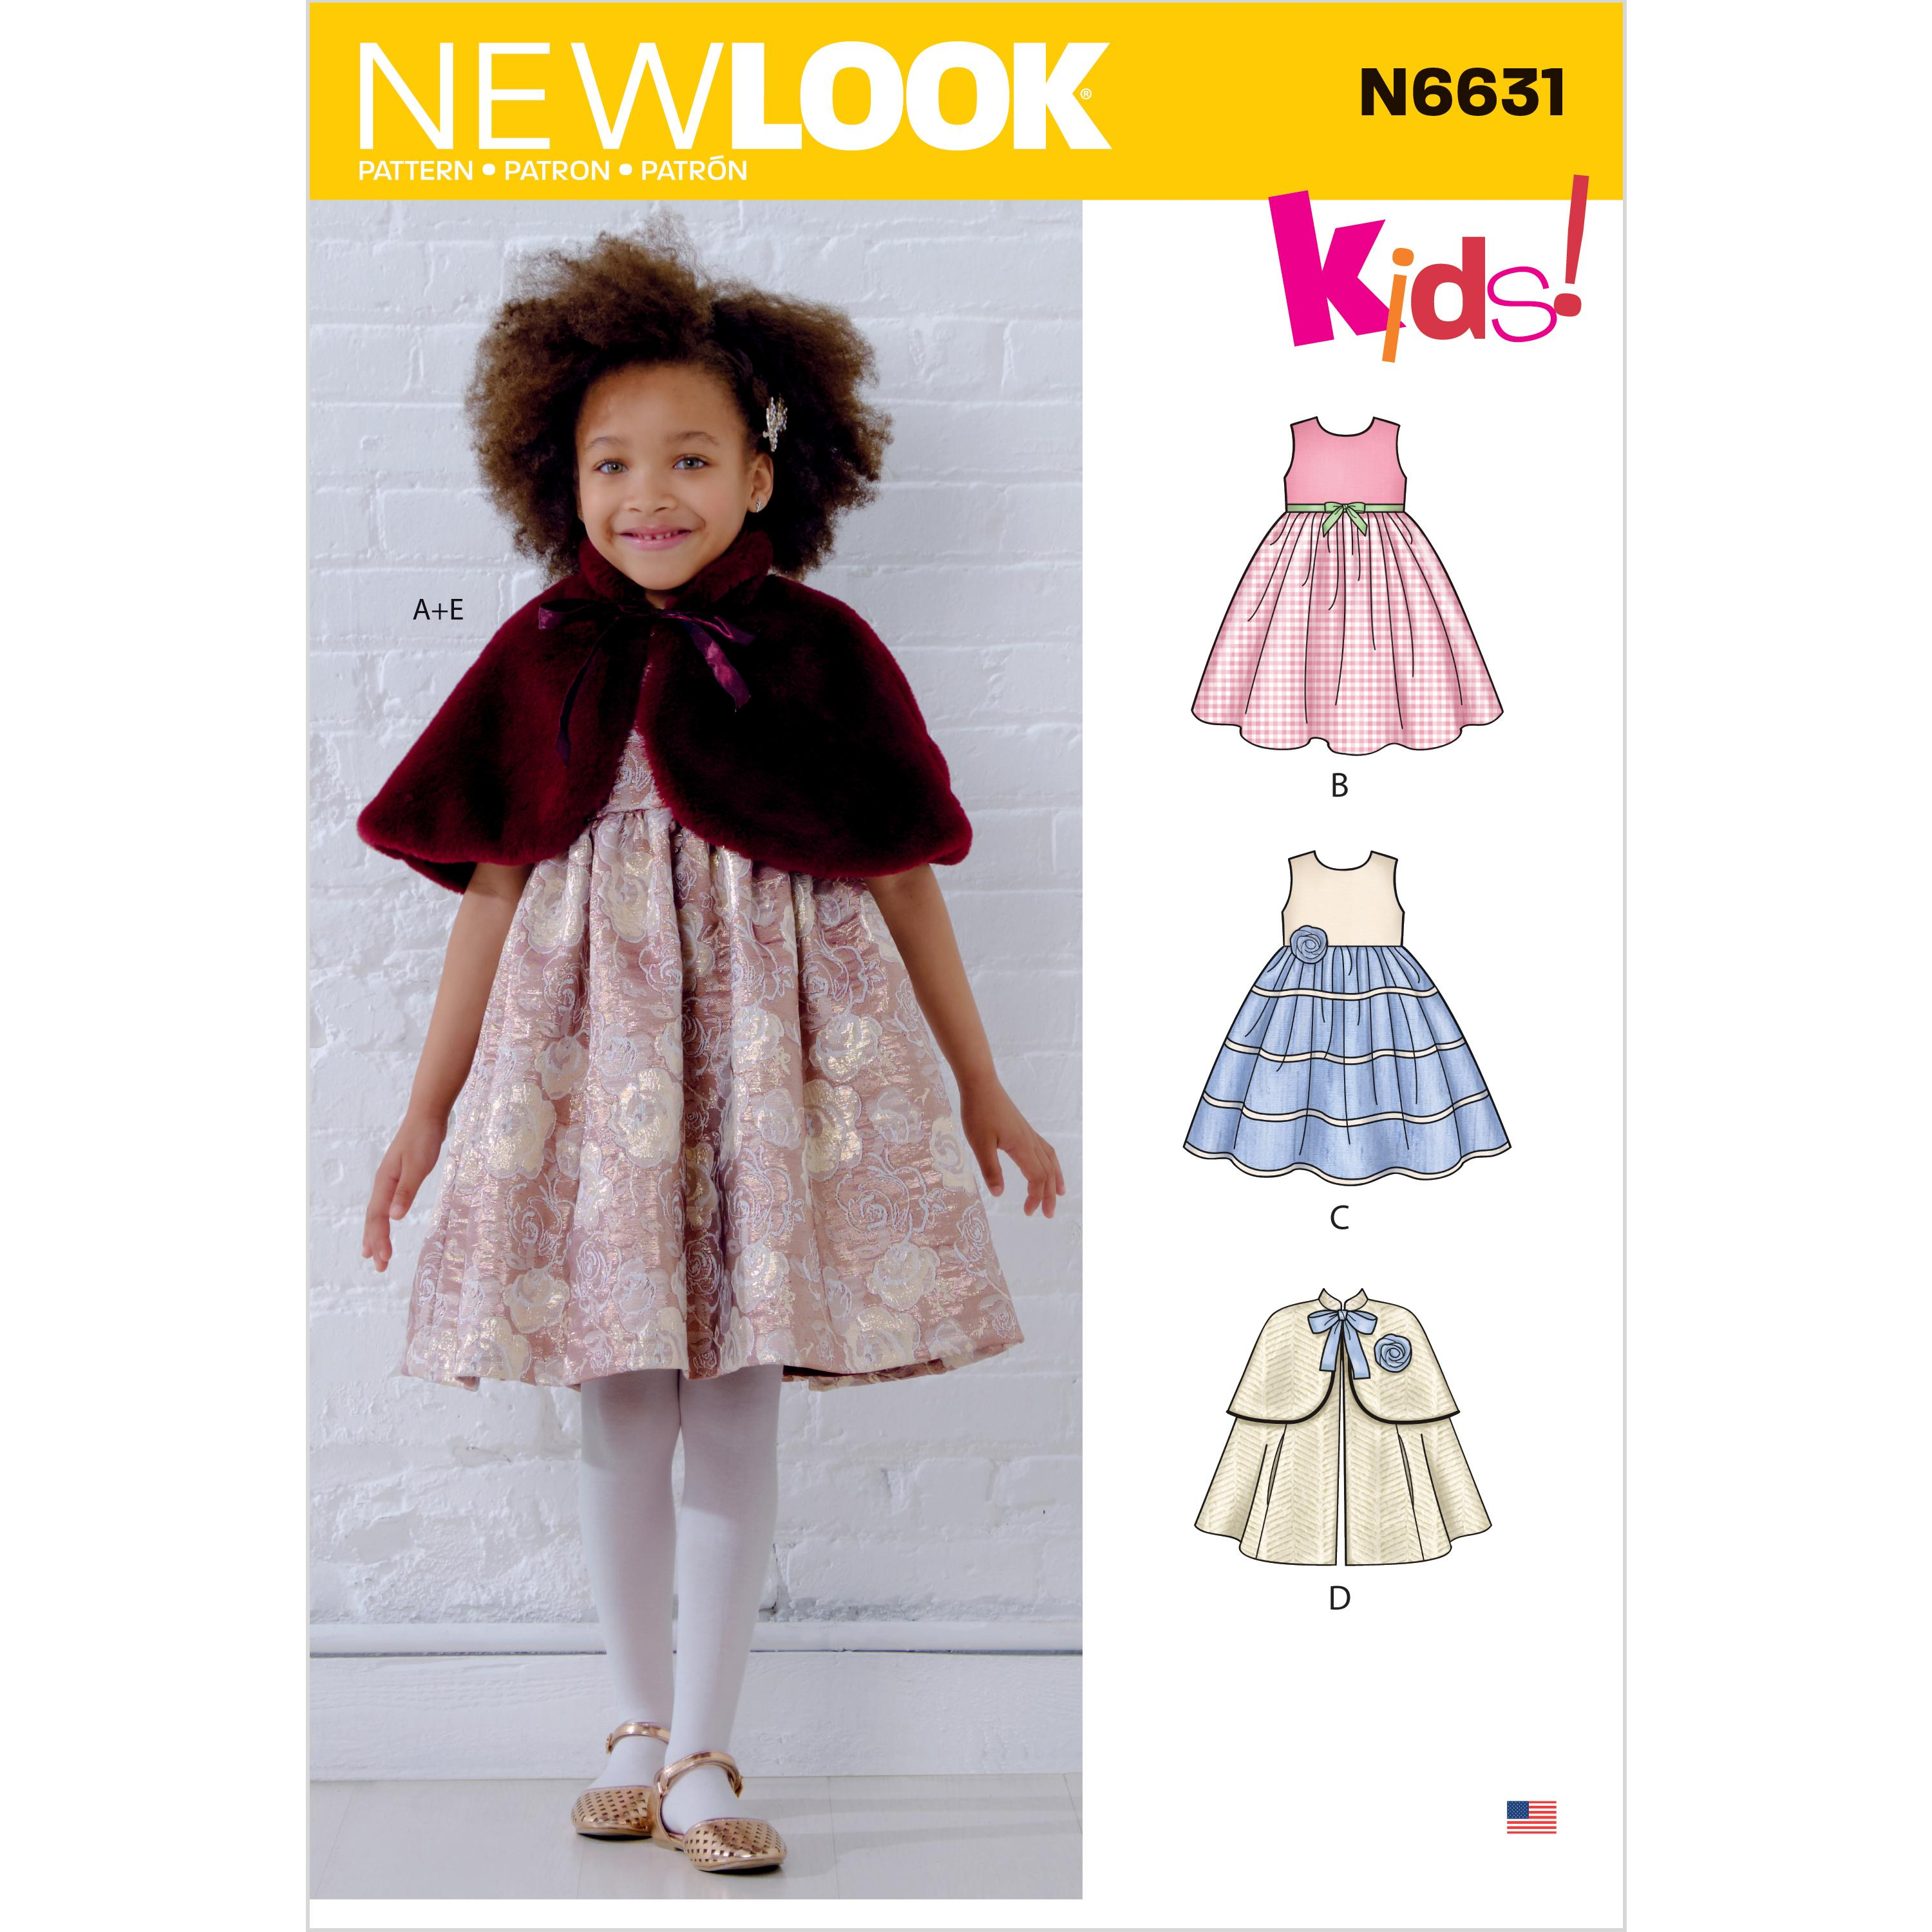 NewLook Sewing Pattern N6631 Children's Dresses and Capes